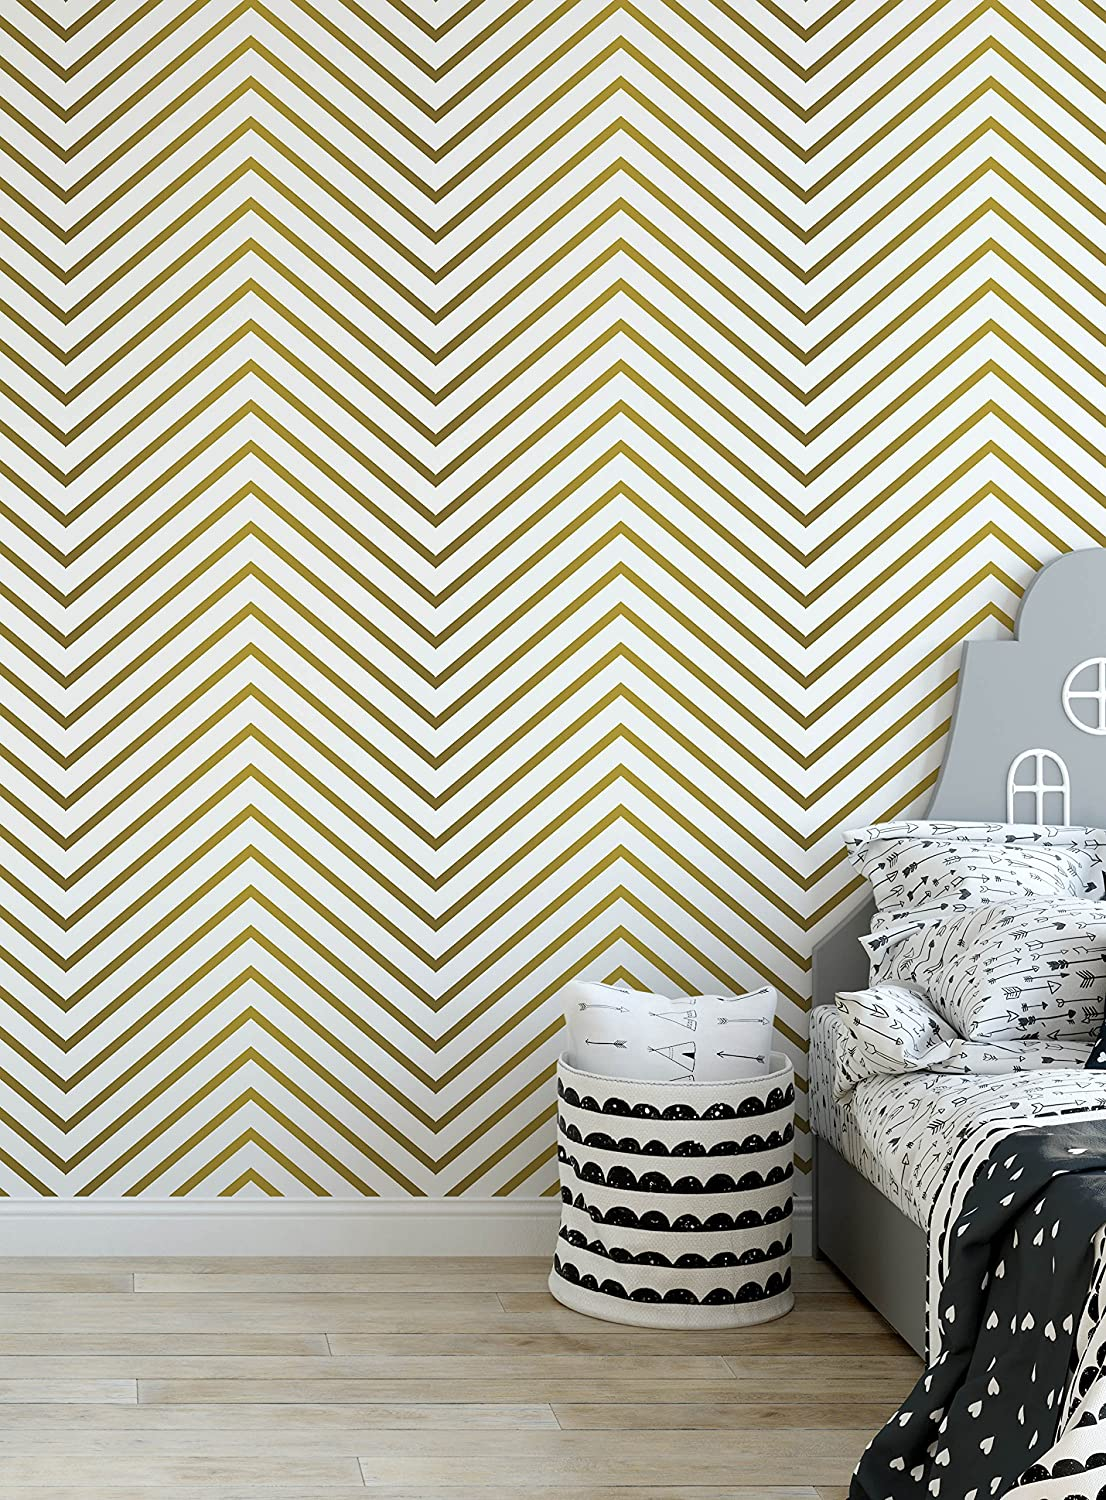 Costacover gold print zigzag removable wallpaper vinyl self adhesive geometric wall decor peel and stick chevron wall paper custom colors available